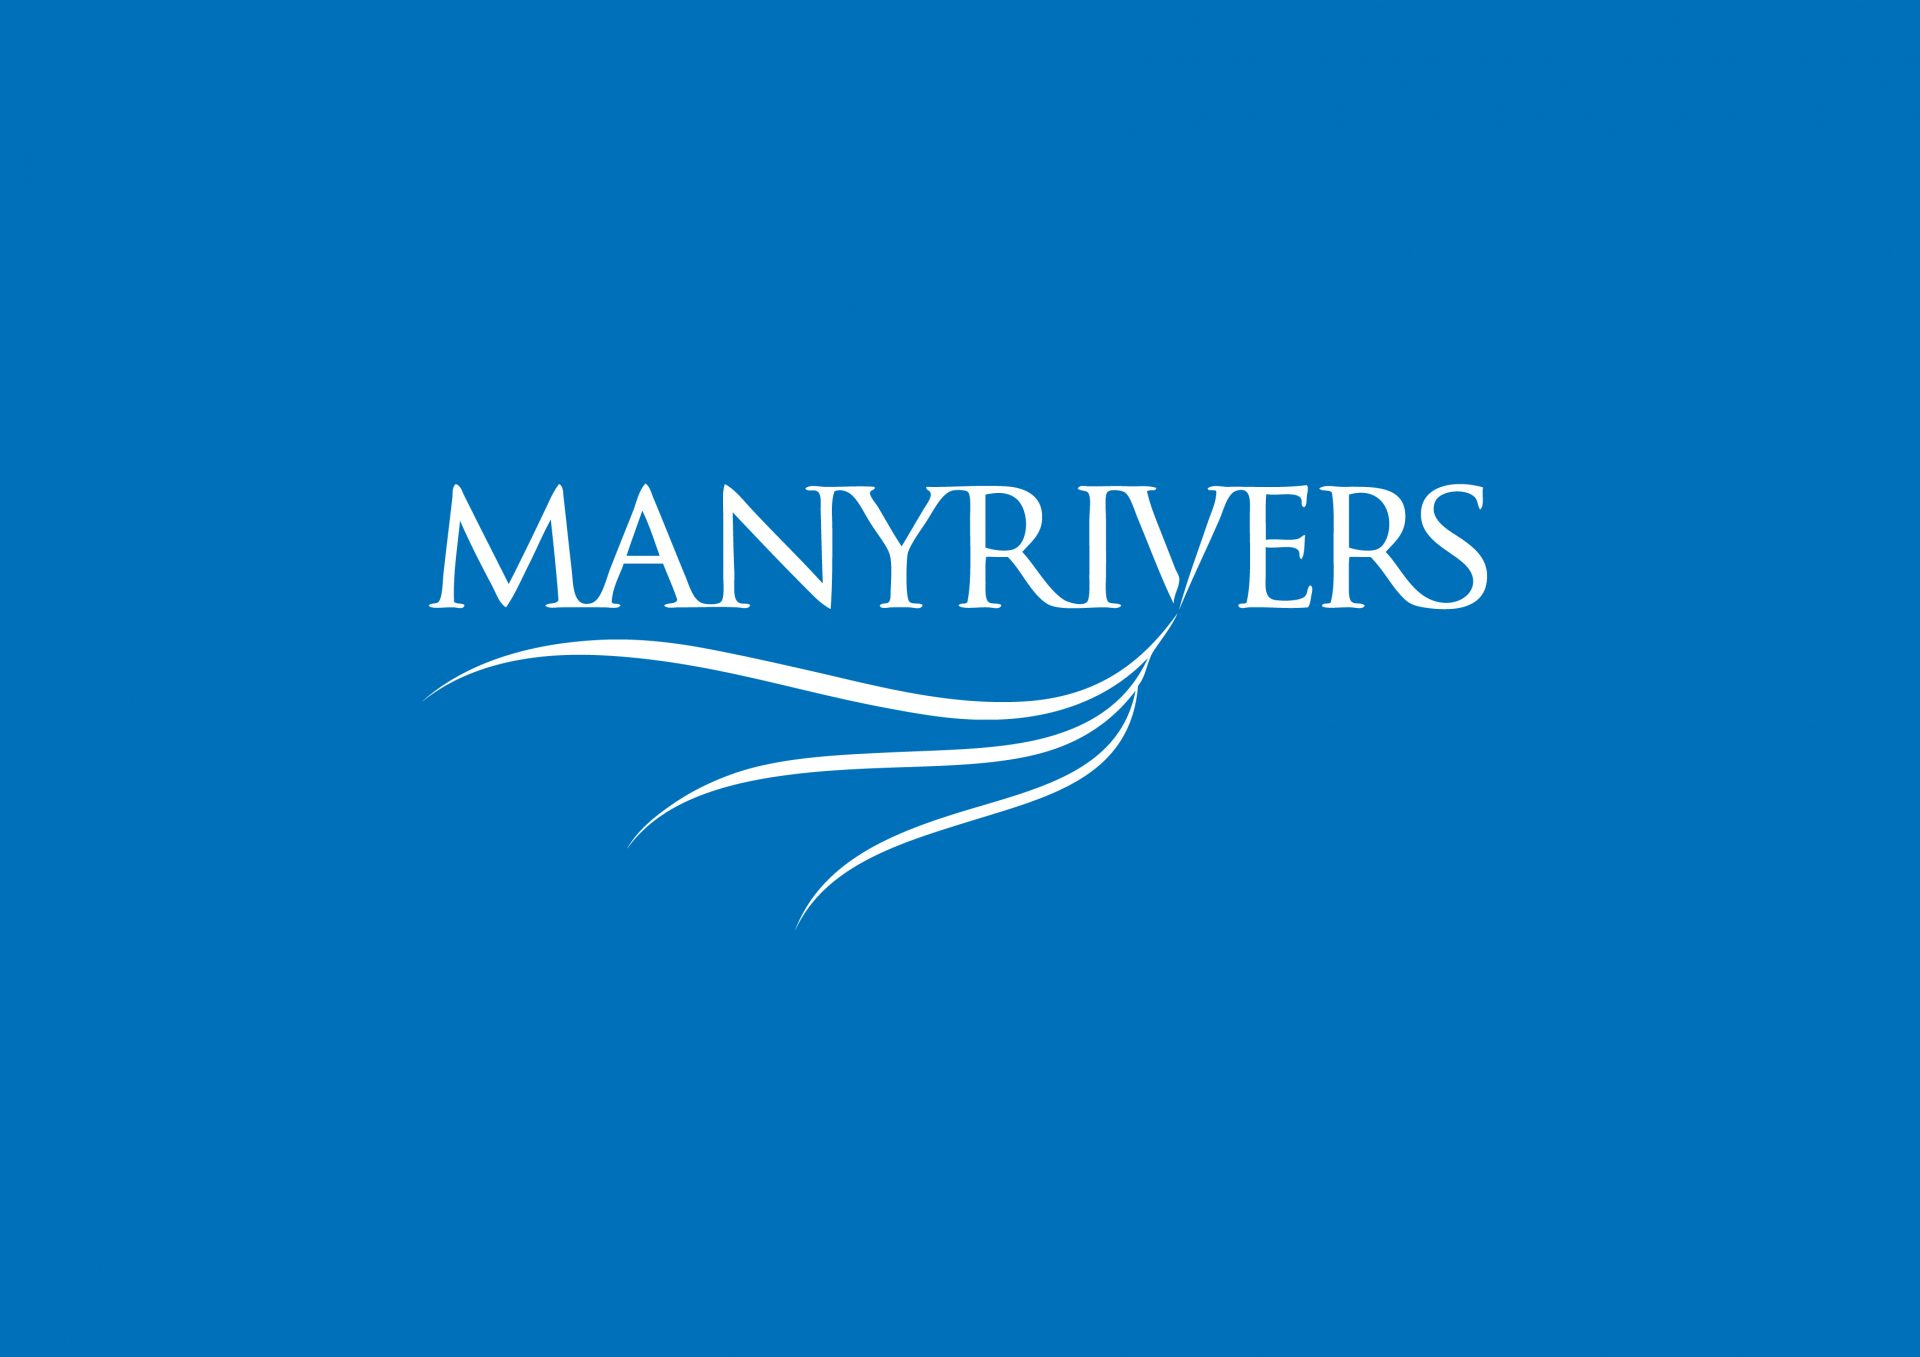 ManyRivers-logo-v1.0-Wht-on-Blue-1.jpg